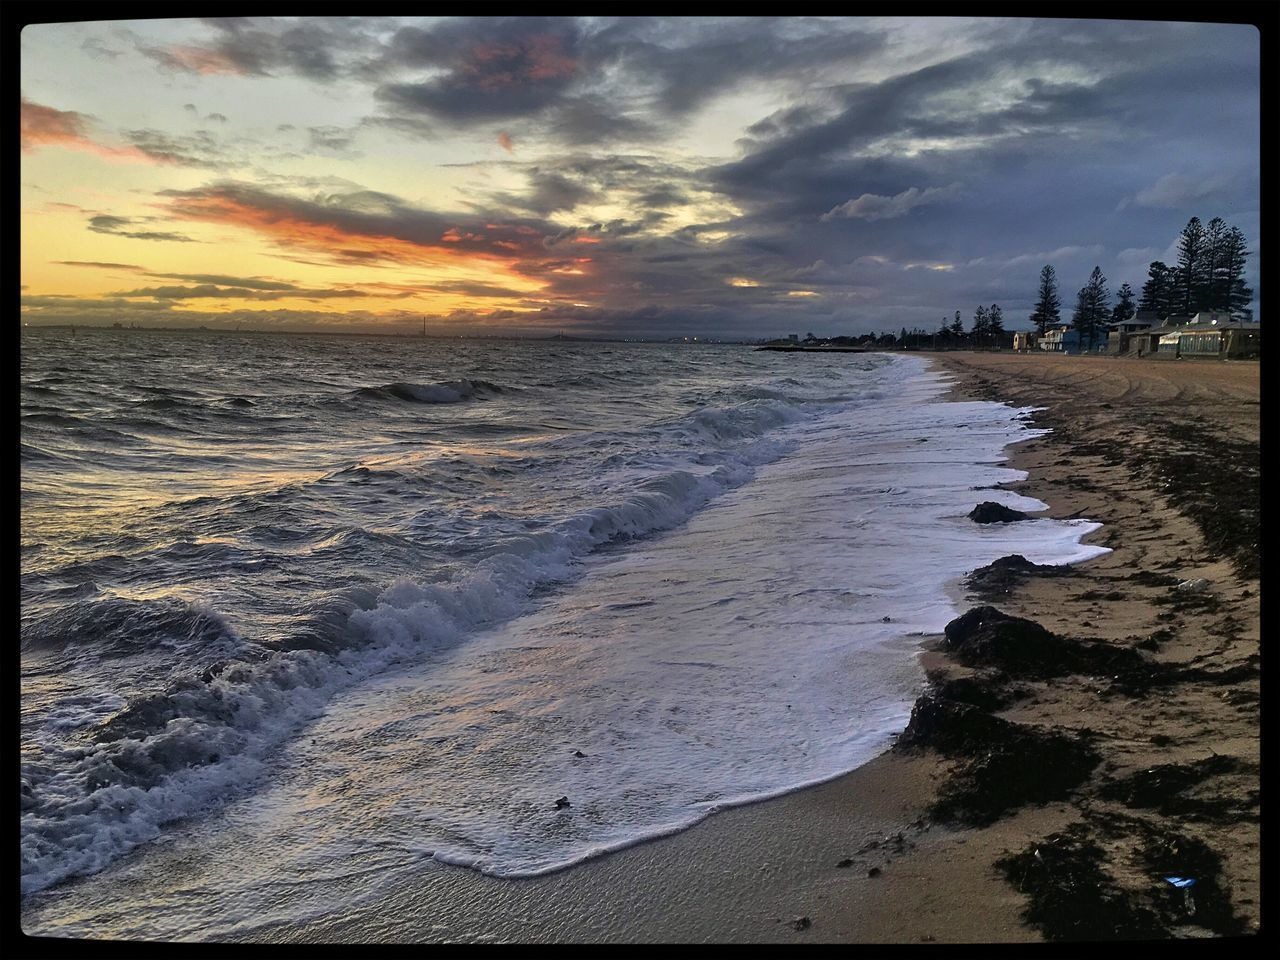 Beachphotography Beautiful Sand Water Beach Nature Dusk Sunset Coastline Taking Photos View Melbourne Elwood